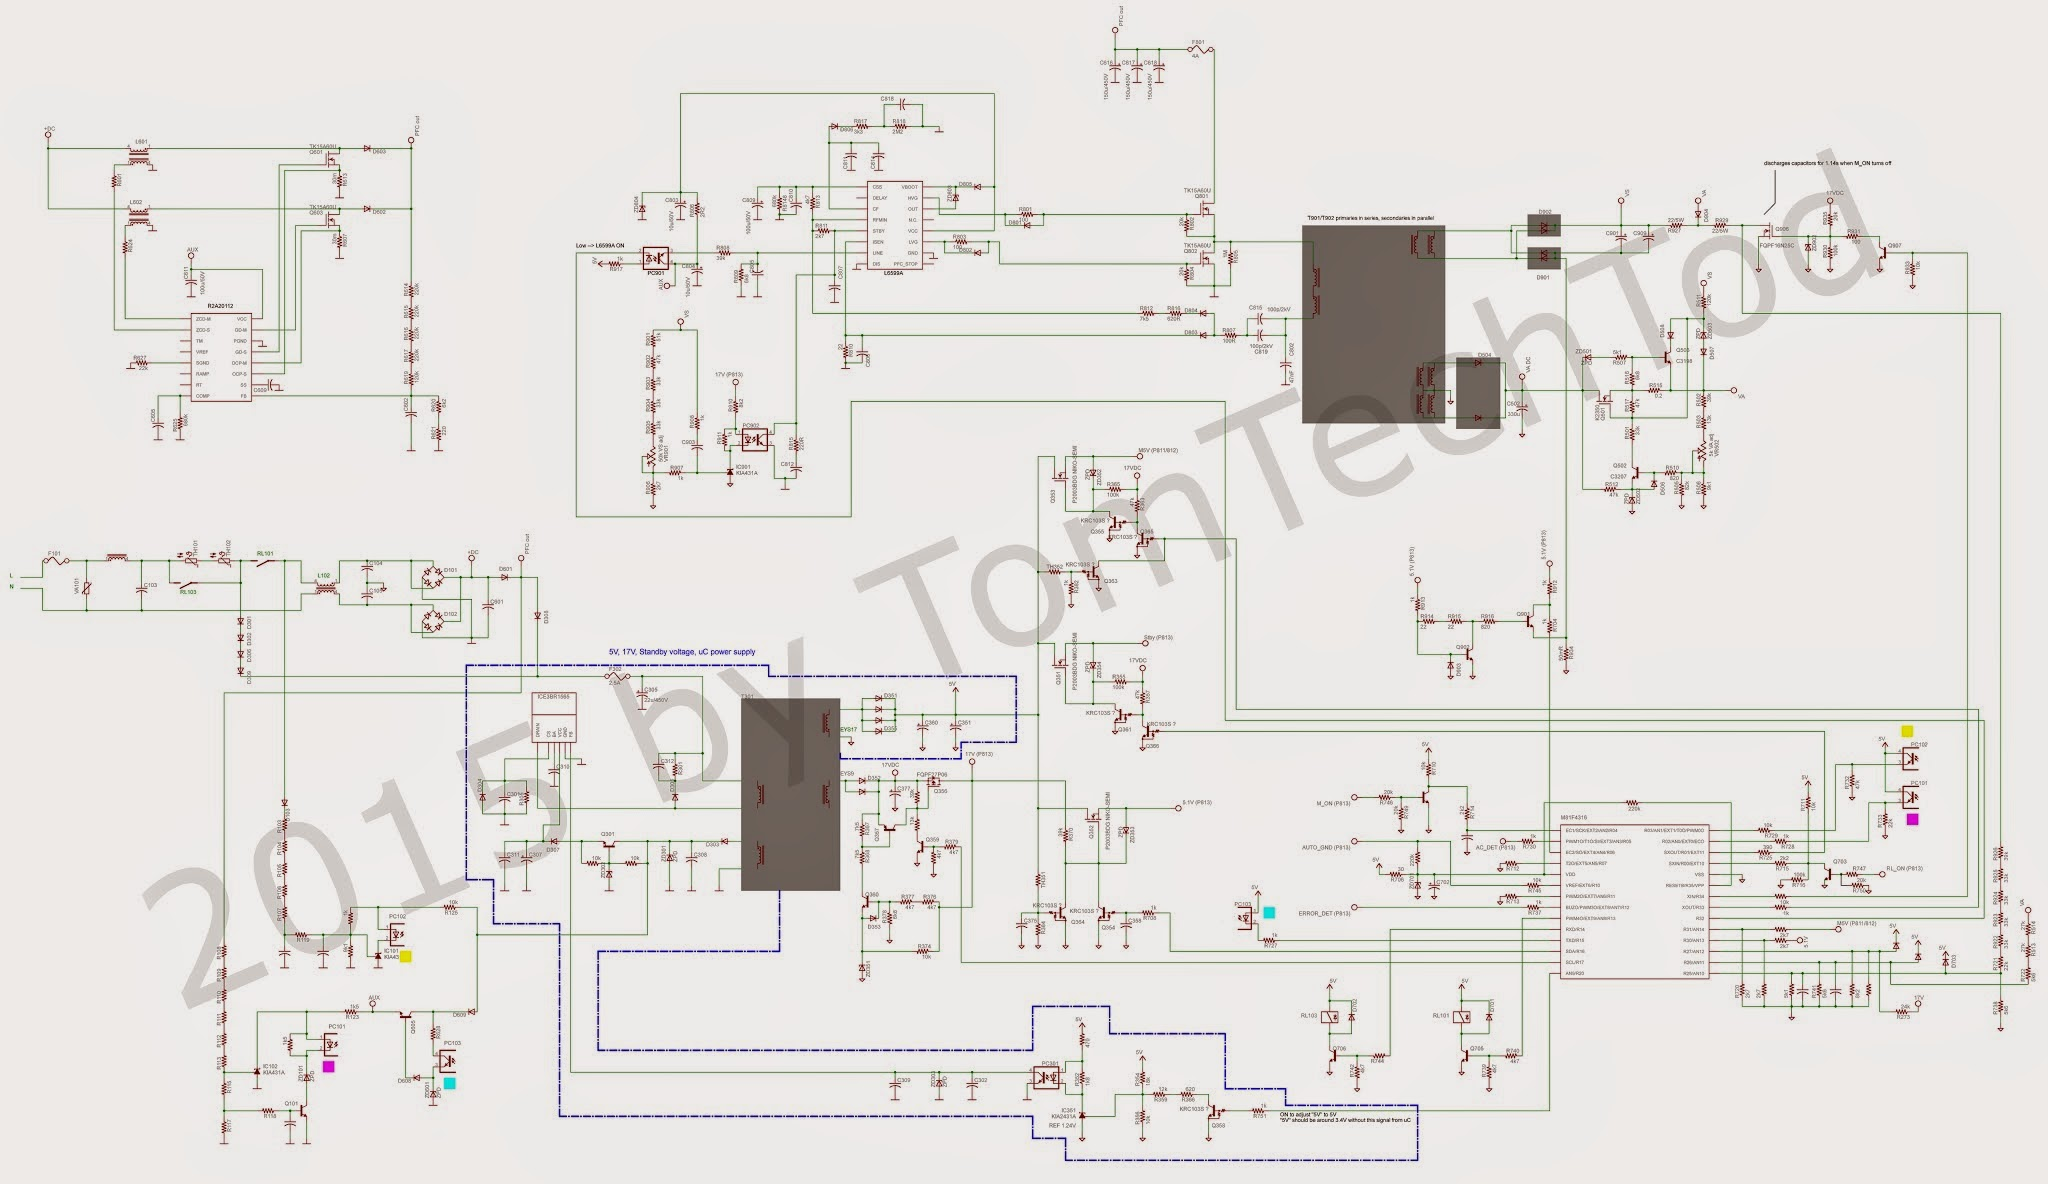 Electronics Schematics Repairs Lg Psu Board Eay60968801 Repair 50pk990 Za 50pk950 Ua 50pk750 50pk590 Ze 50pk550c Ud 50pk550 50pk540 Ue 50pk350 Zb 50px950 And Probably Others The Schematic Is Very Similar